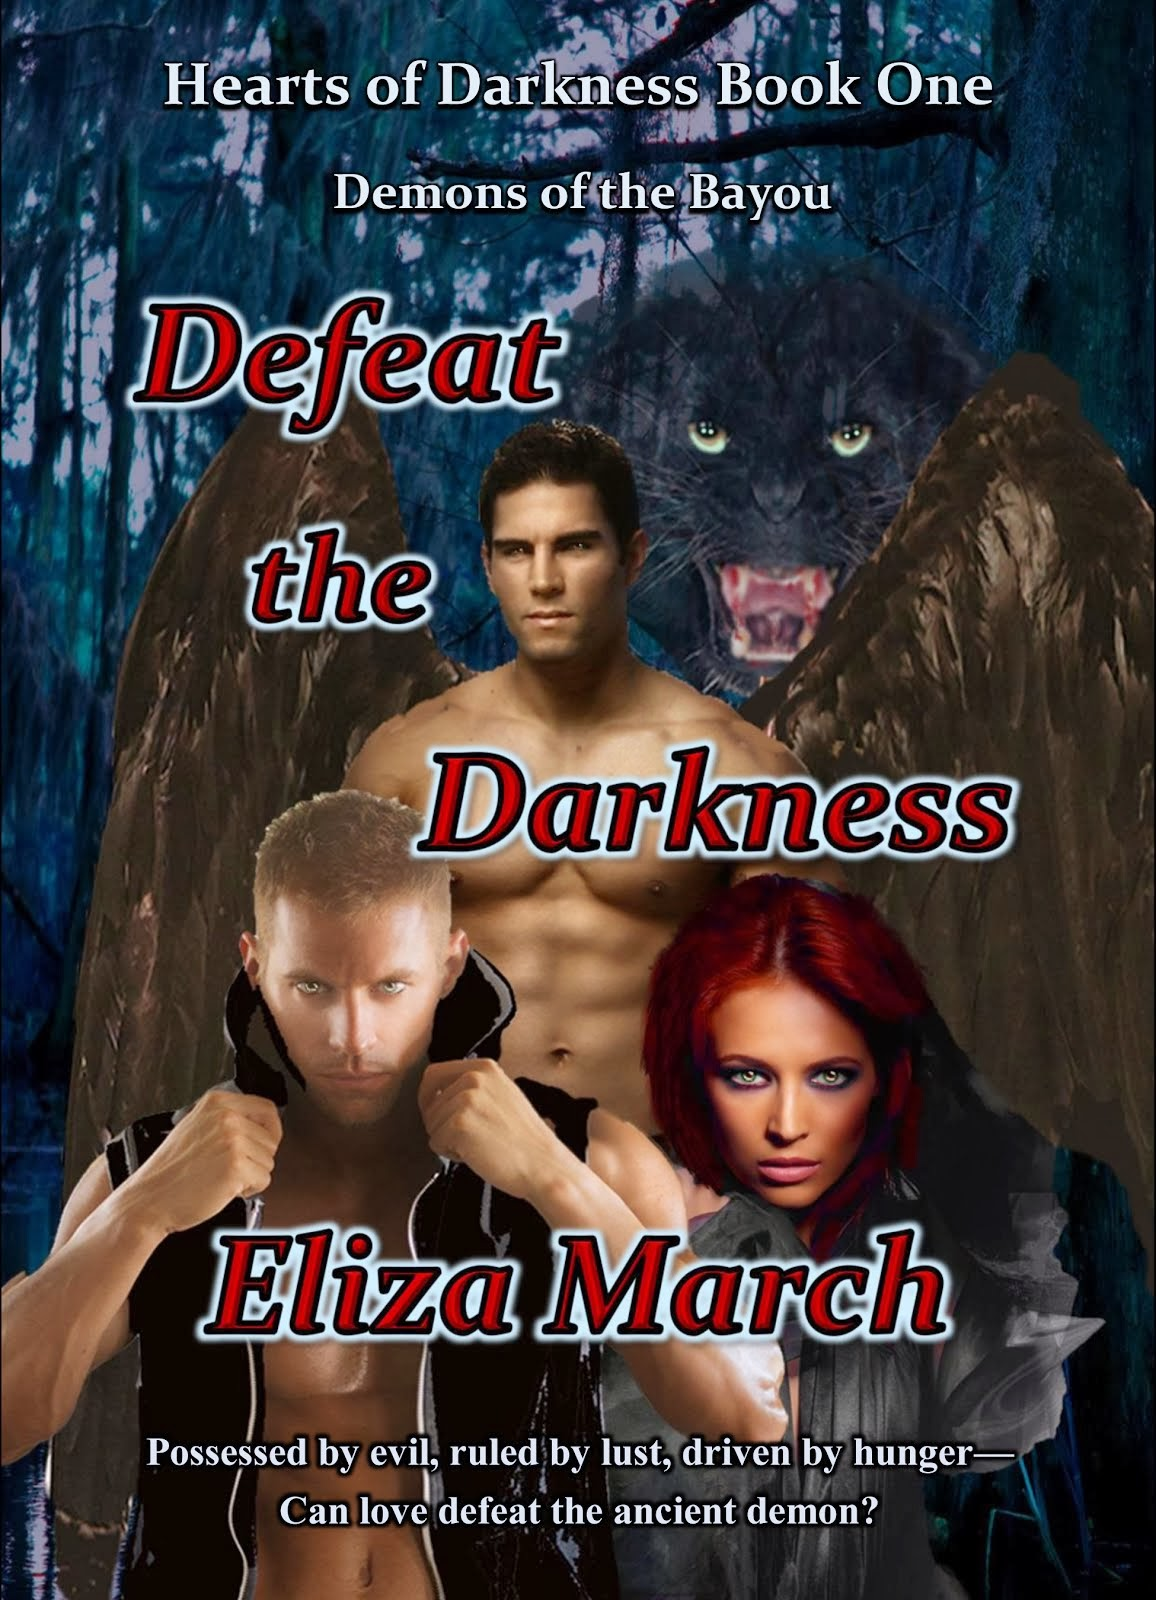 Hearts of Darkness Book 1